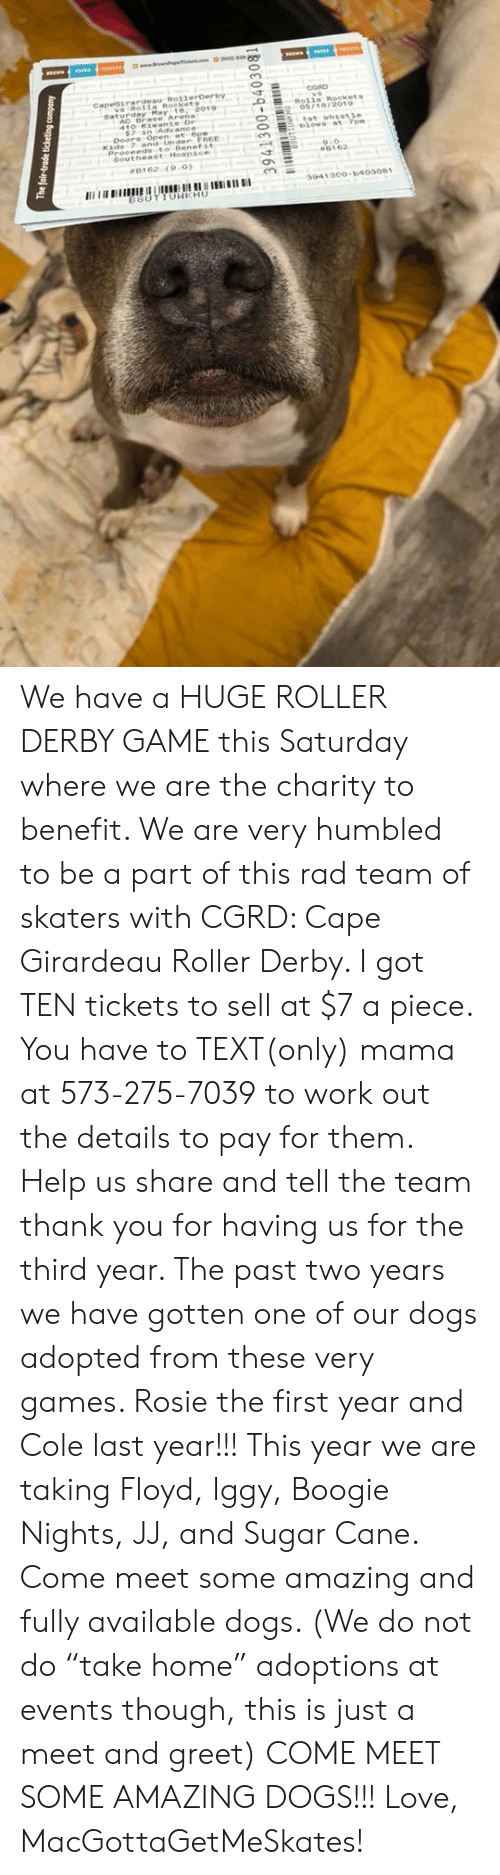 """Girardeau: CORD  CapeGrardeau RollerDerby  179018  Y 183  ·C  Rolls Rockets  aturday May 1 2019  blows at 7pm  Kids 7 and Under FREE  9.0  В 1 62  8162 (9.0  941300o-b403081  BSUTIUWKHU We have a HUGE ROLLER DERBY GAME this Saturday where we are the charity to benefit. We are very humbled to be a part of this rad team of skaters with CGRD: Cape Girardeau Roller Derby. I got TEN tickets to sell at $7 a piece. You have to TEXT(only) mama at 573-275-7039 to work out the details to pay for them. Help us share and tell the team thank you for having us for the third year. The past two years we have gotten one of our dogs adopted from these very games. Rosie the first year and Cole last year!!! This year we are taking Floyd, Iggy, Boogie Nights, JJ, and Sugar Cane. Come meet some amazing and fully available dogs. (We do not do """"take home"""" adoptions at events though, this is just a meet and greet) COME MEET SOME AMAZING DOGS!!!   Love, MacGottaGetMeSkates!"""